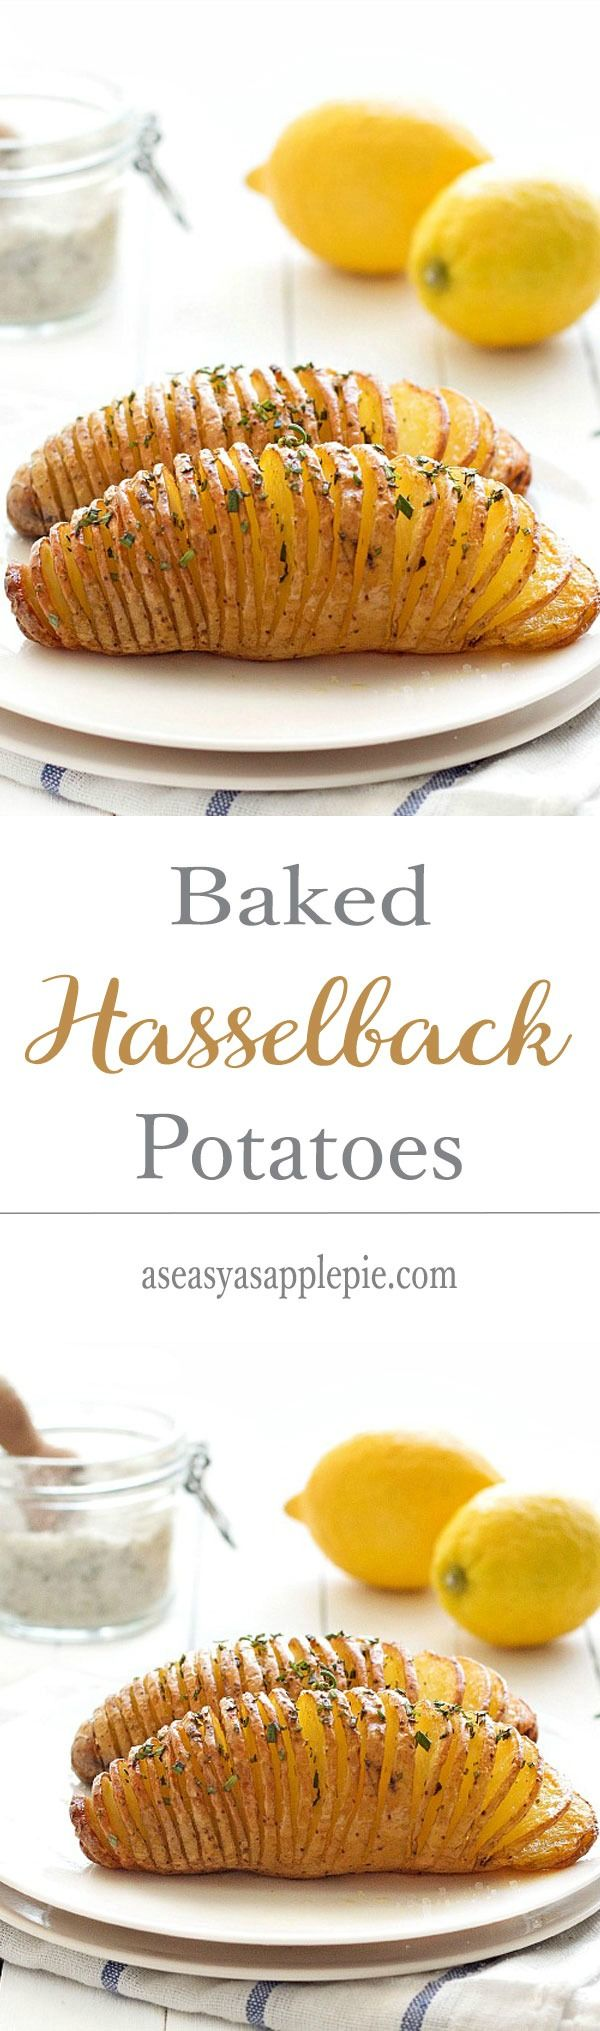 A simple and creative side dish or appetizer recipe: baked hasselback potatoes. Vegan and vegetarian